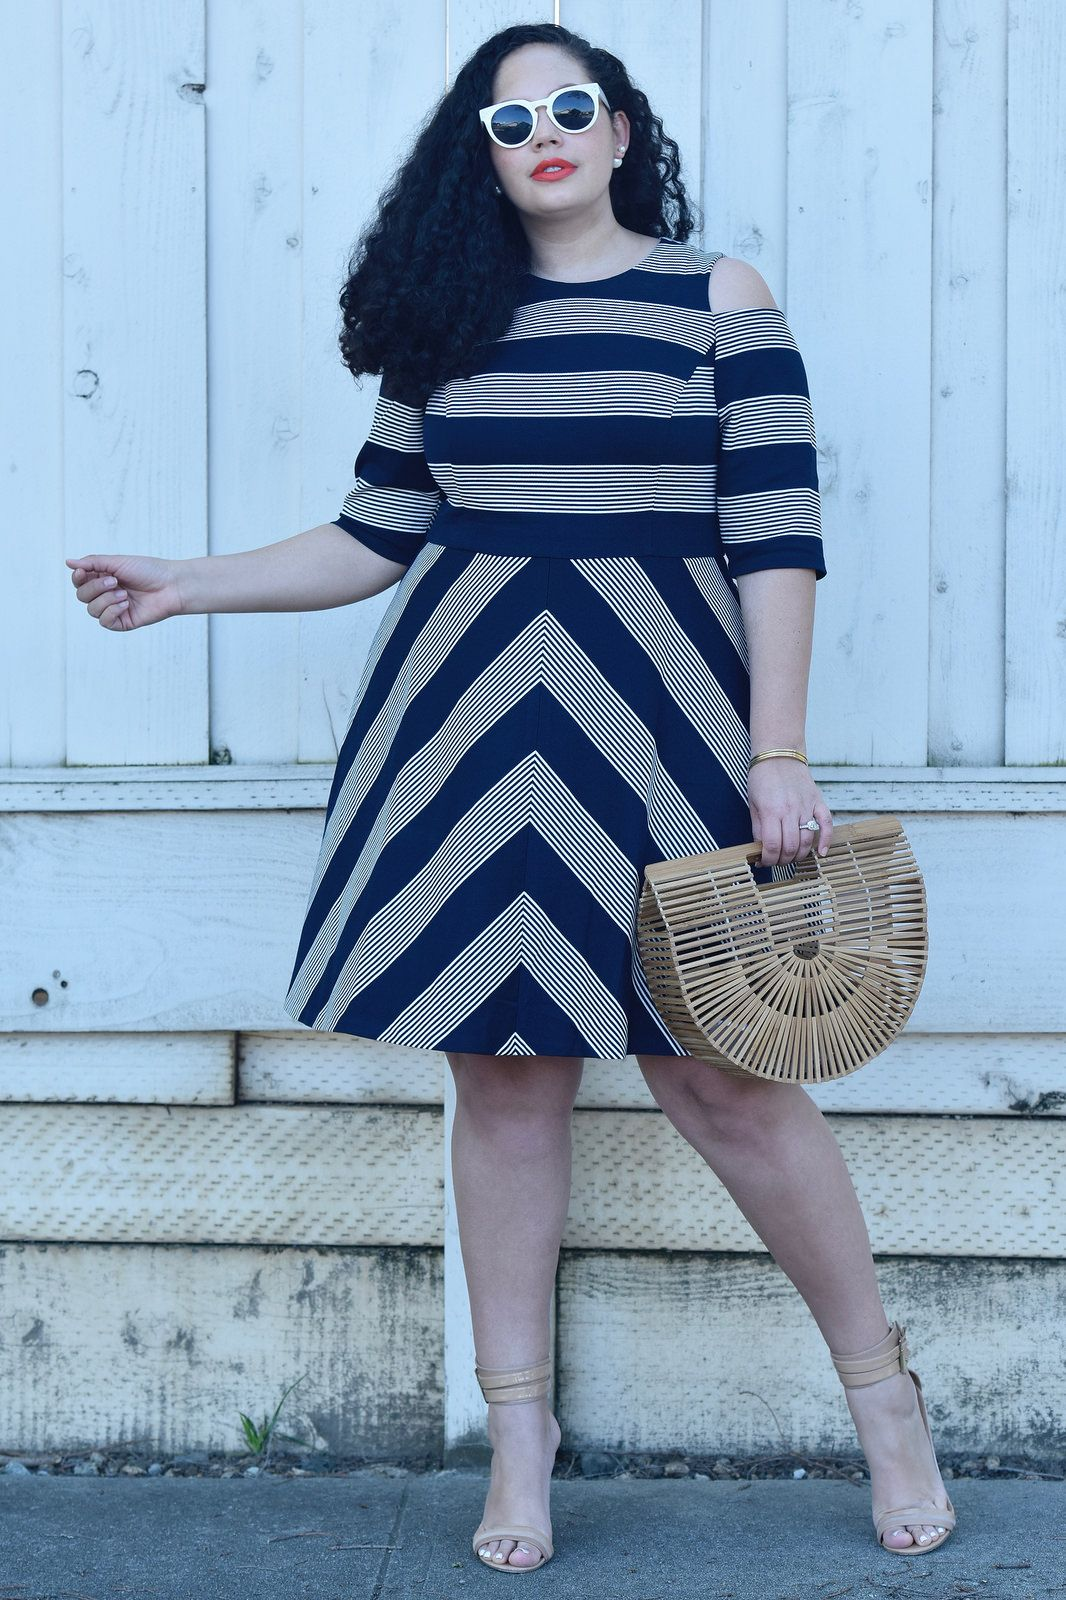 This dress proves stripes can be flattering via @GirlwithCurves